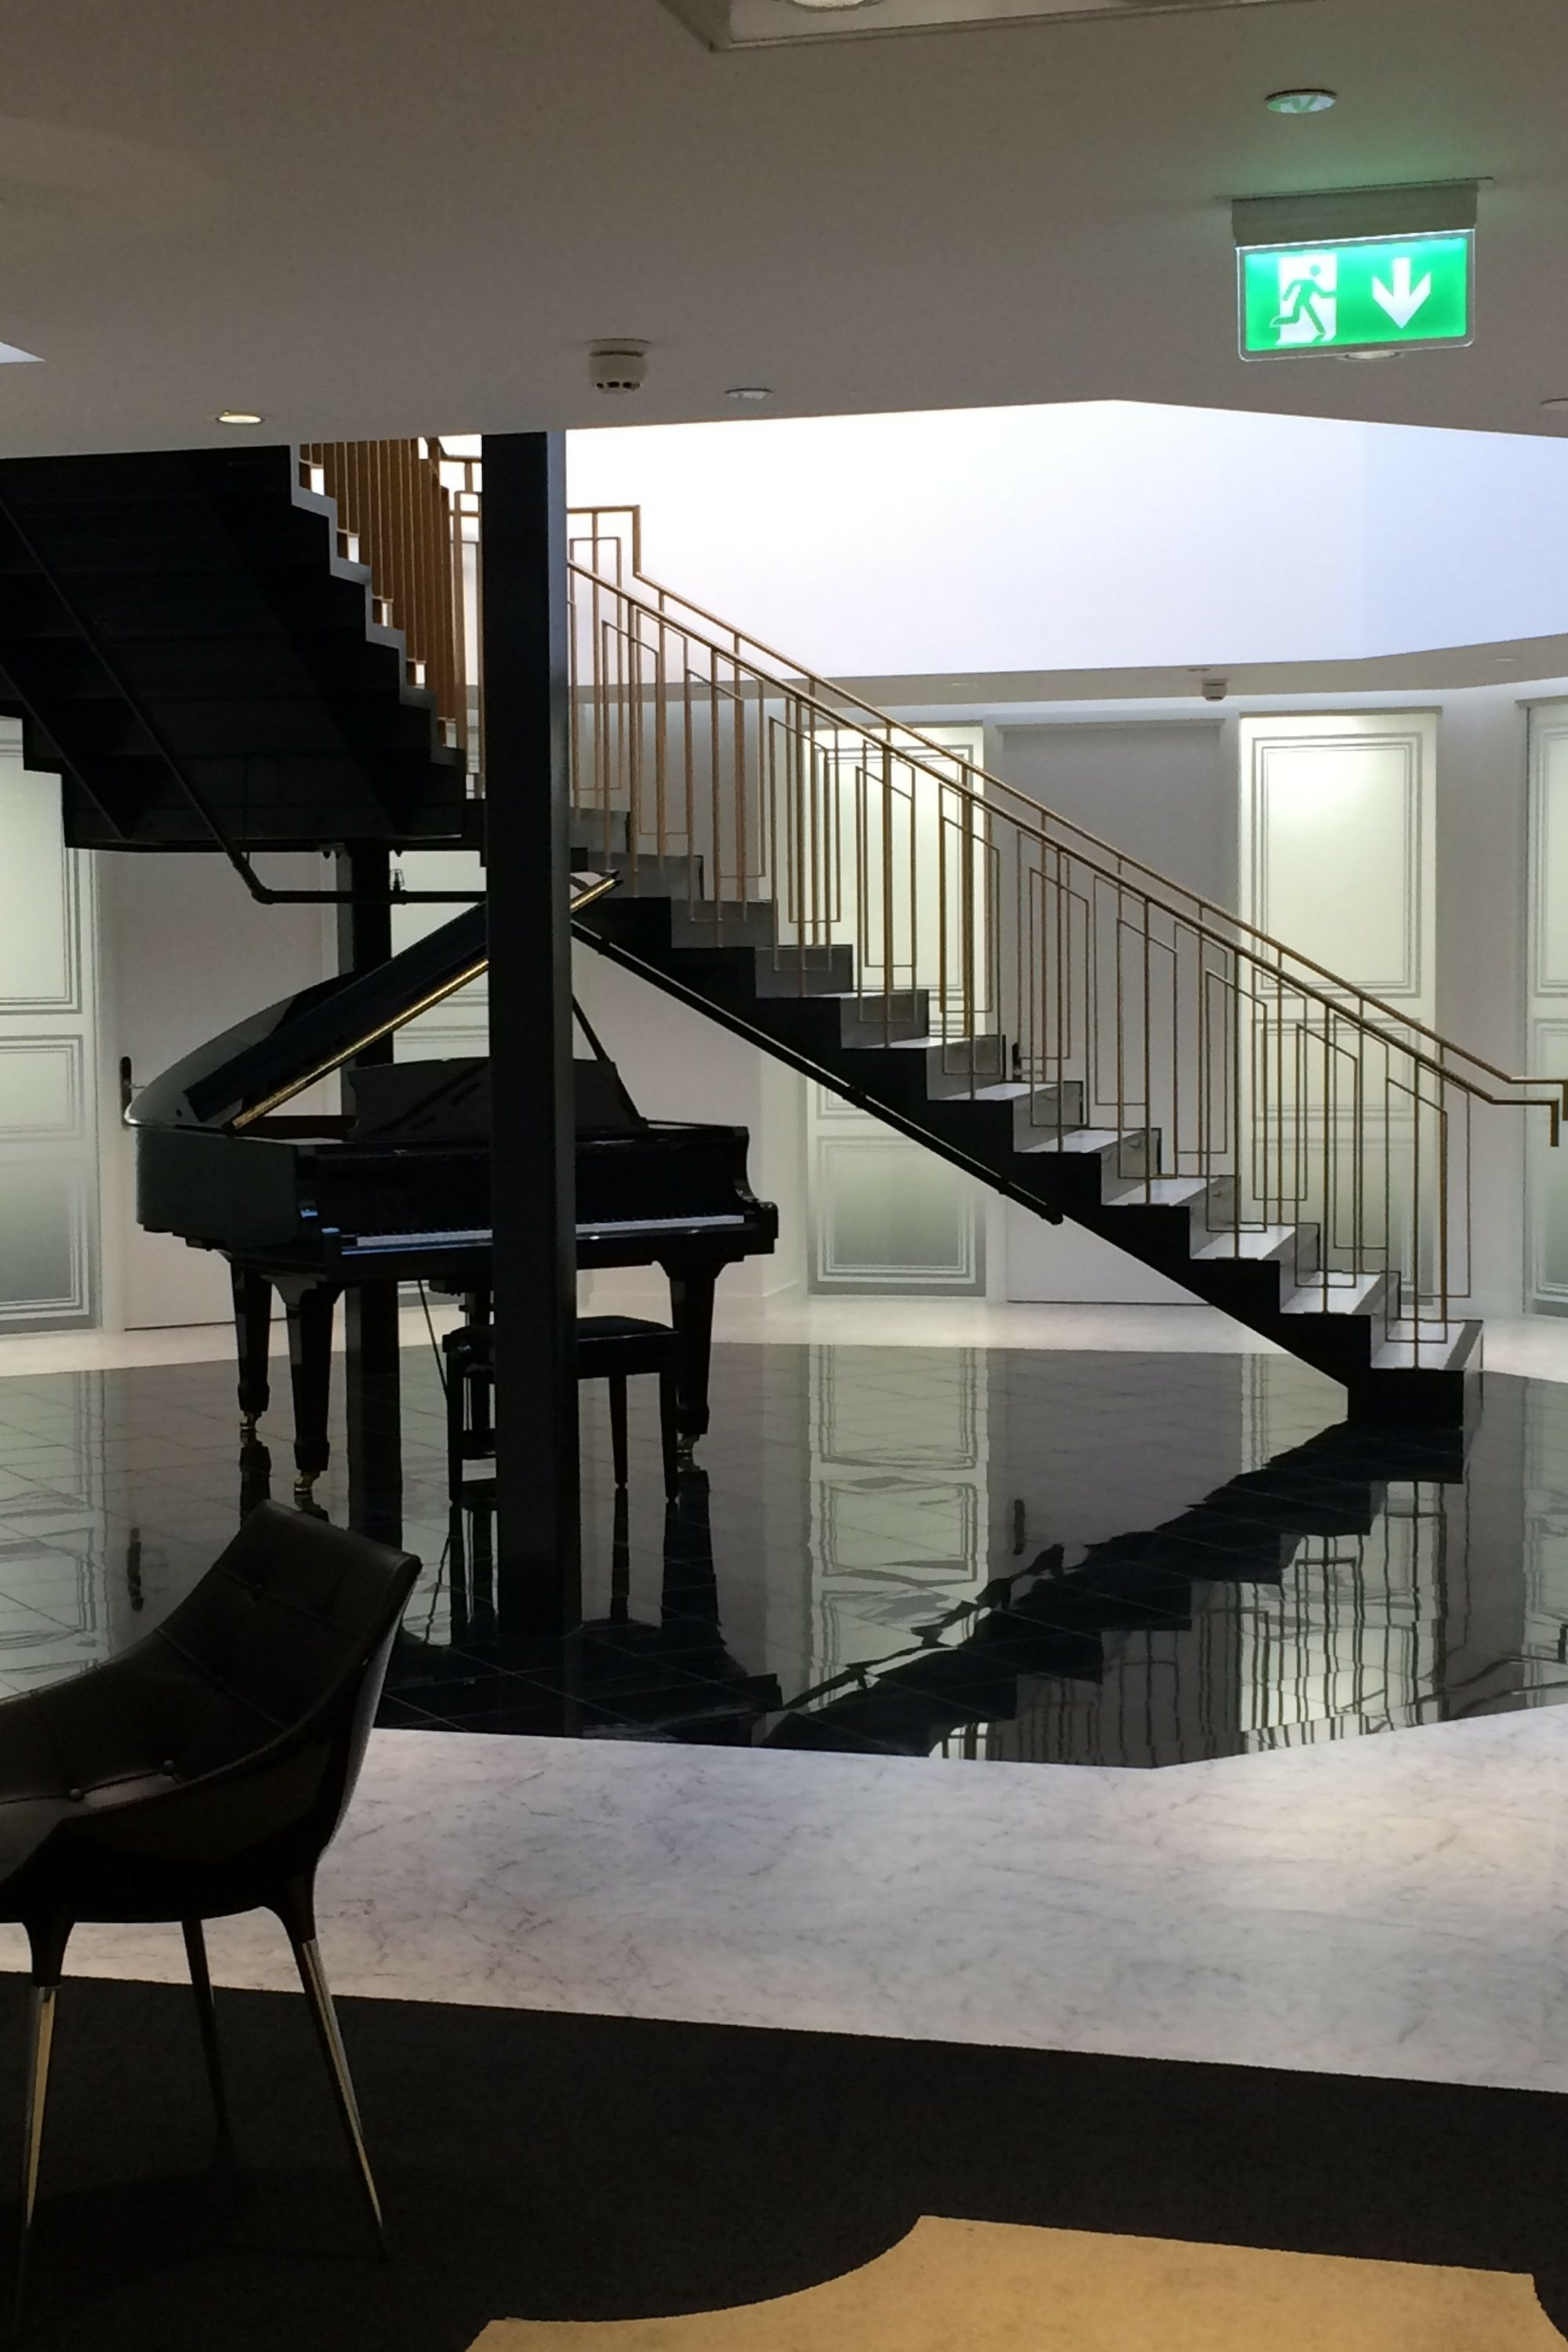 Balustrade to straight stair